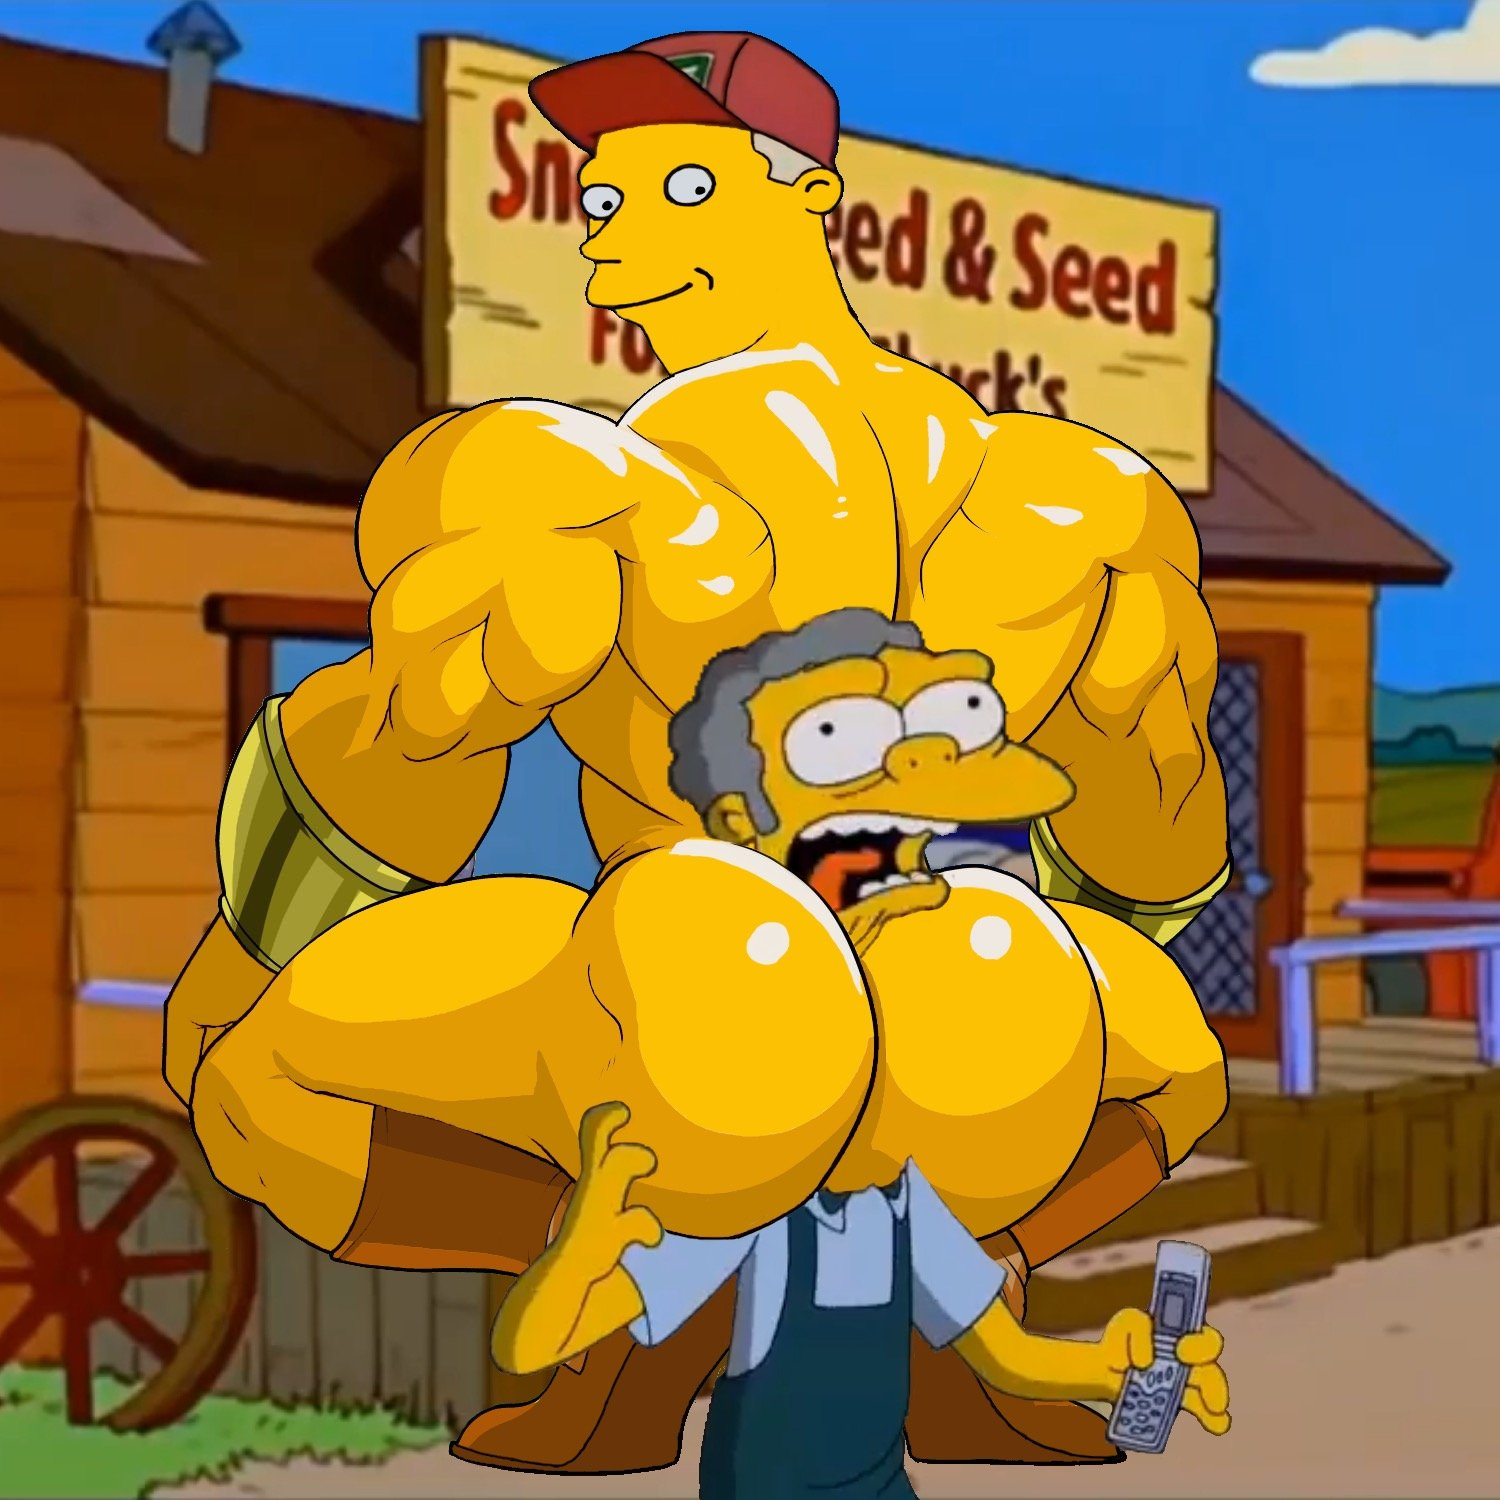 the current state of online simpsons discussion in the year of our lord 2020 ad.jpg